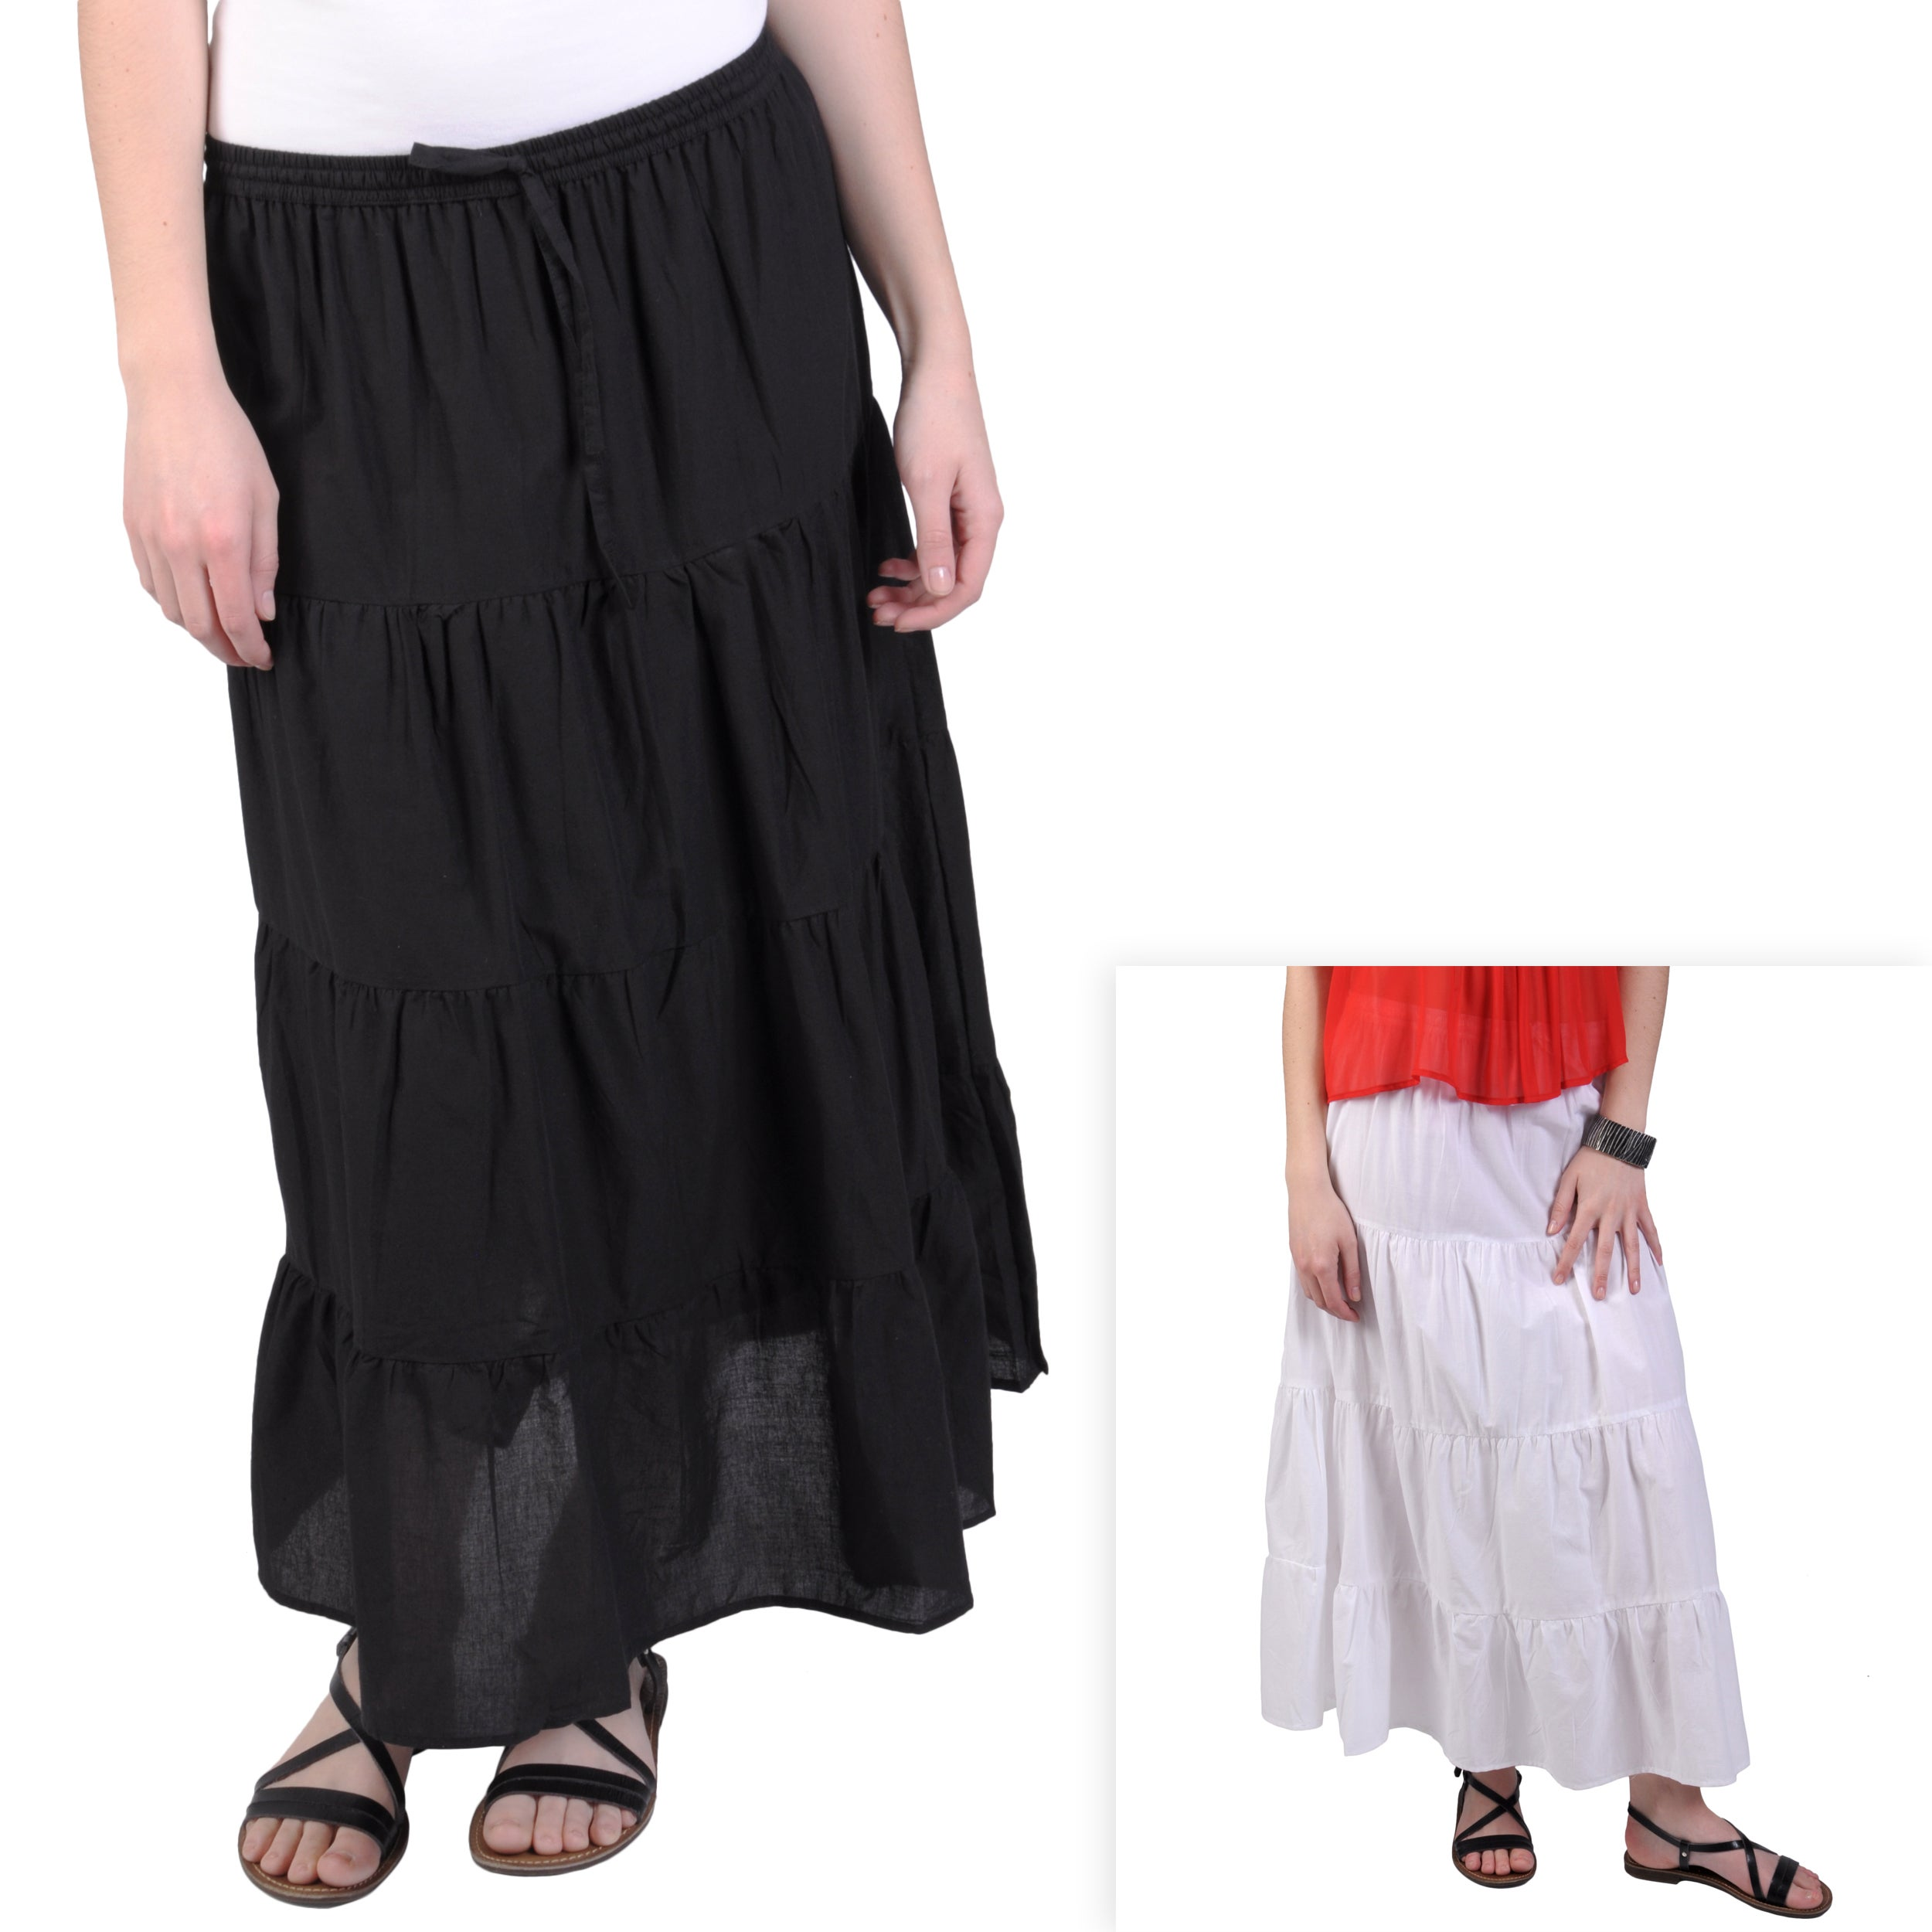 Journee Collection Women's Tiered Mid-Length Skirt w/ Self-tie